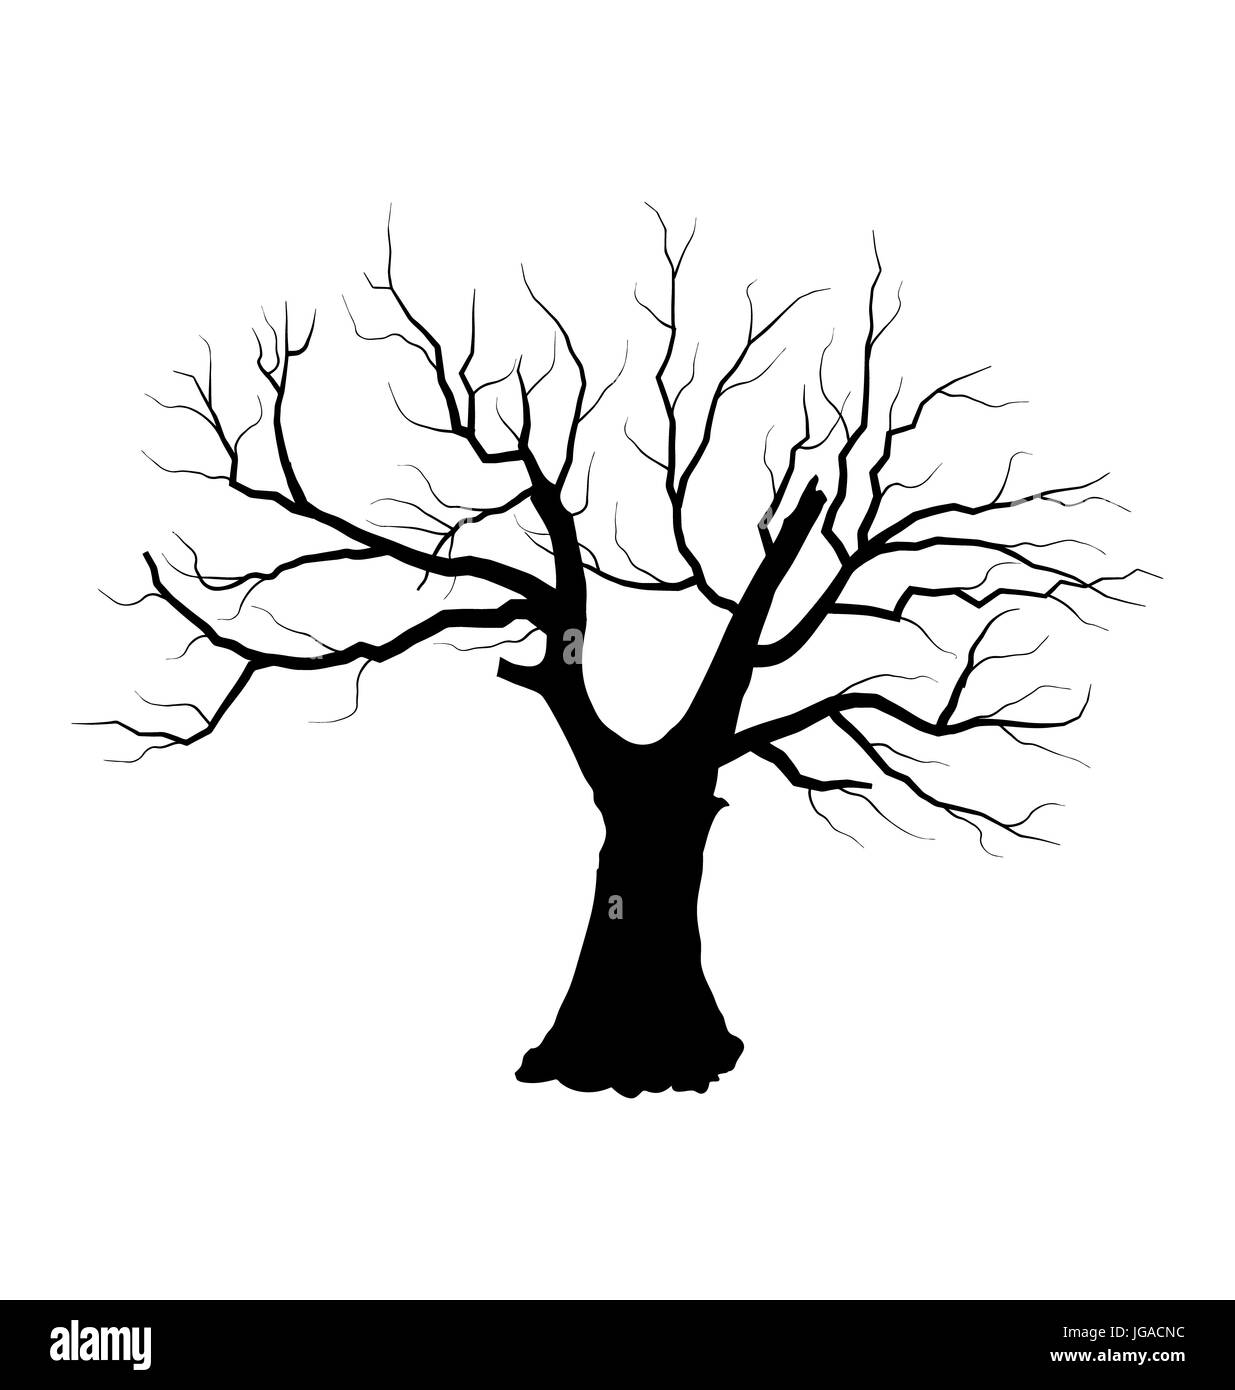 Illustration Sketch Of Dead Tree Without Leaves Isolated On White Stock Photo Alamy 1000 x 1333 jpeg 142 кб. alamy